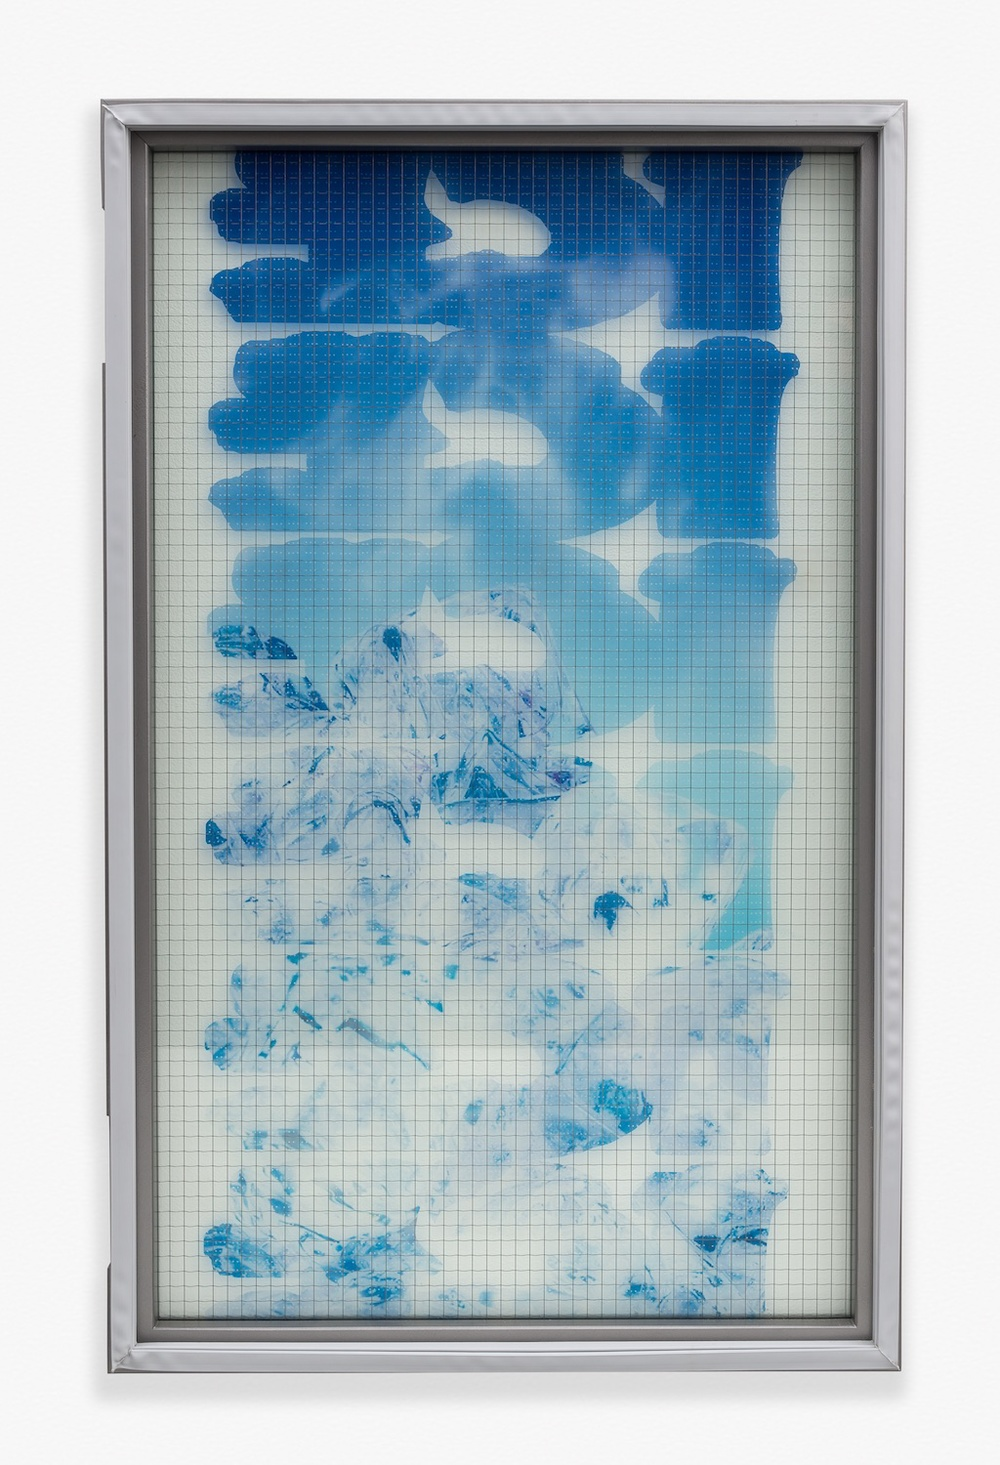 Chris Bradley  Freezer Door (ICEICEICE)  2014 Wire glass, printed clear film, wood, rubber gasket 44h x 27w x 2d in CB102